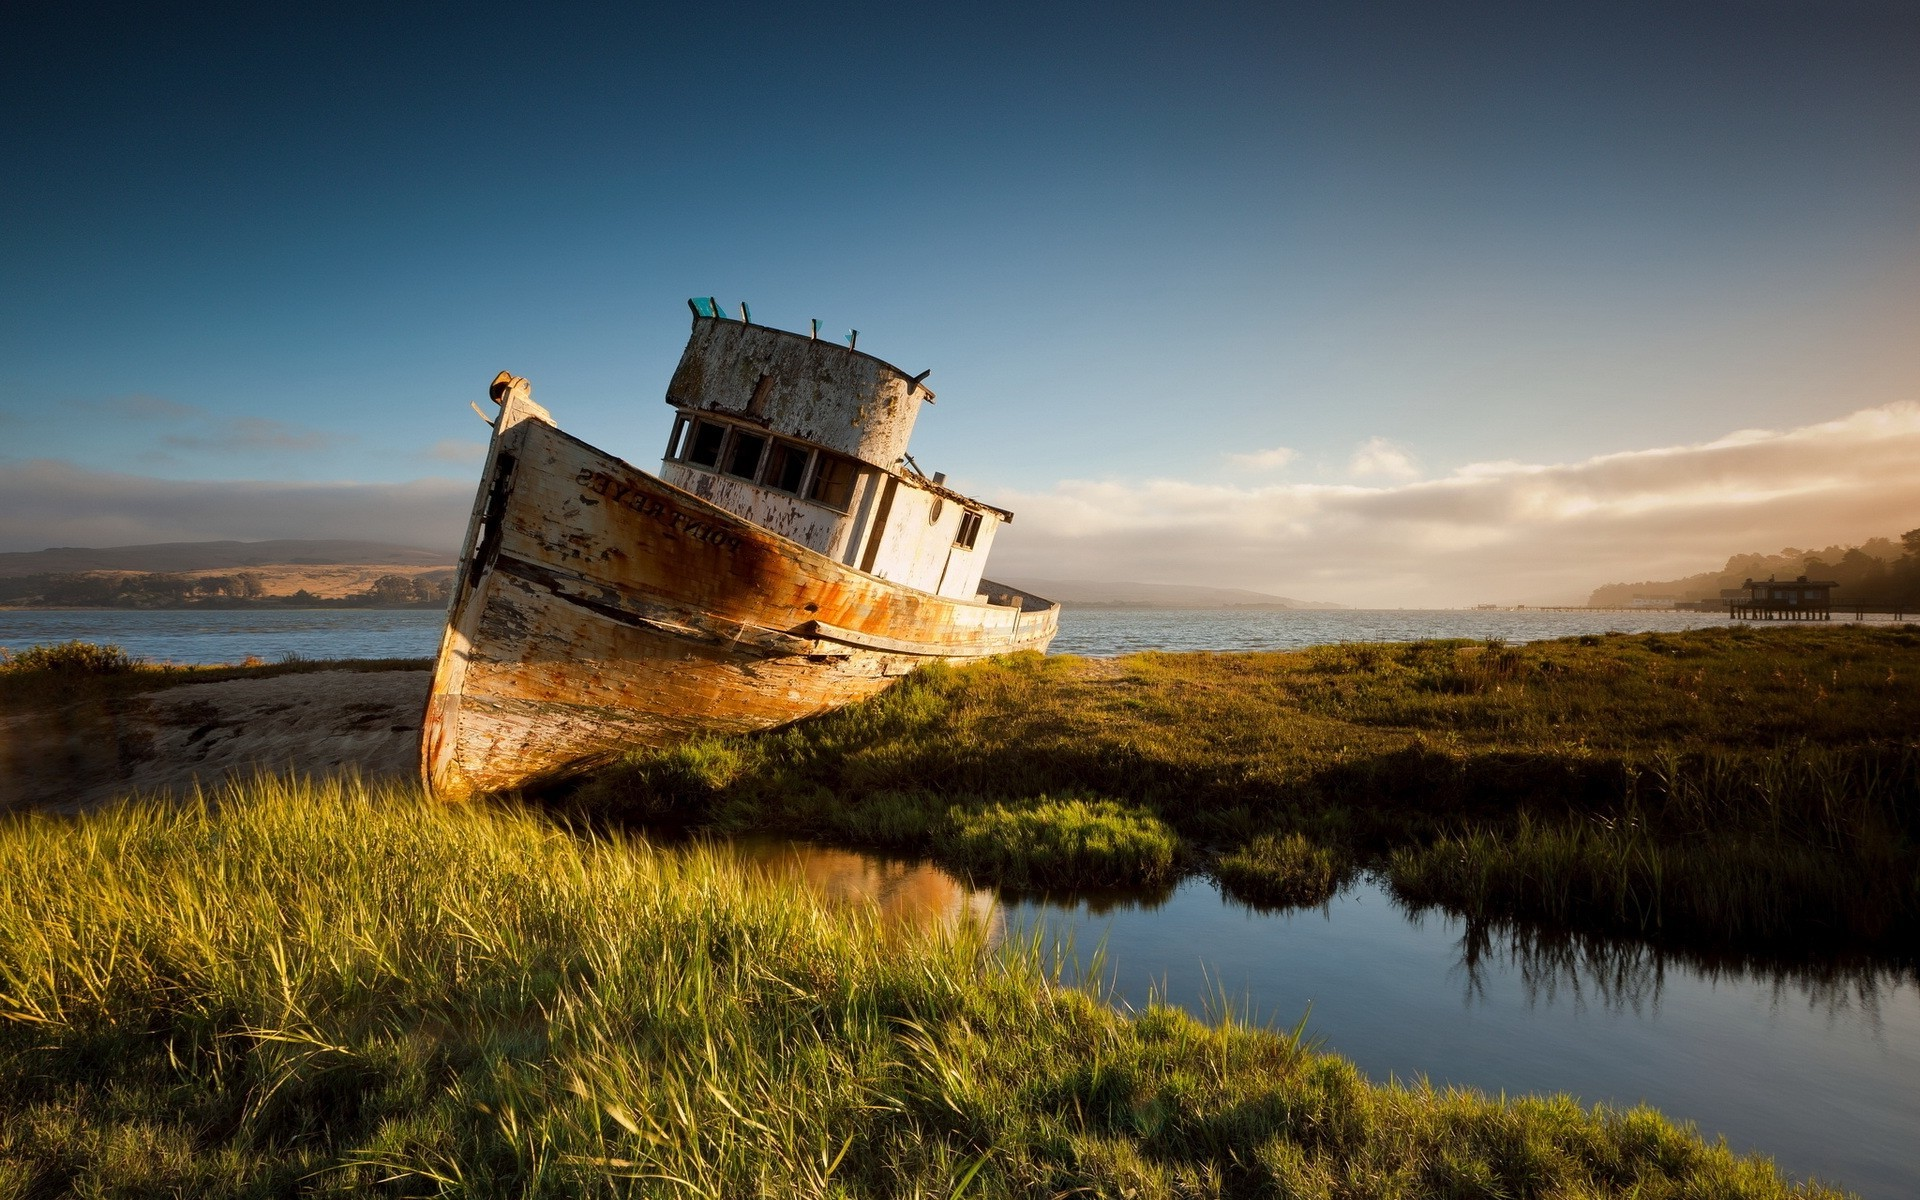 Res: 1920x1200, nature, Landscape, Water, Sea, Clouds, Ship, Shipwreck, Rust, Sand, Grass,  Hill, California Wallpapers HD / Desktop and Mobile Backgrounds